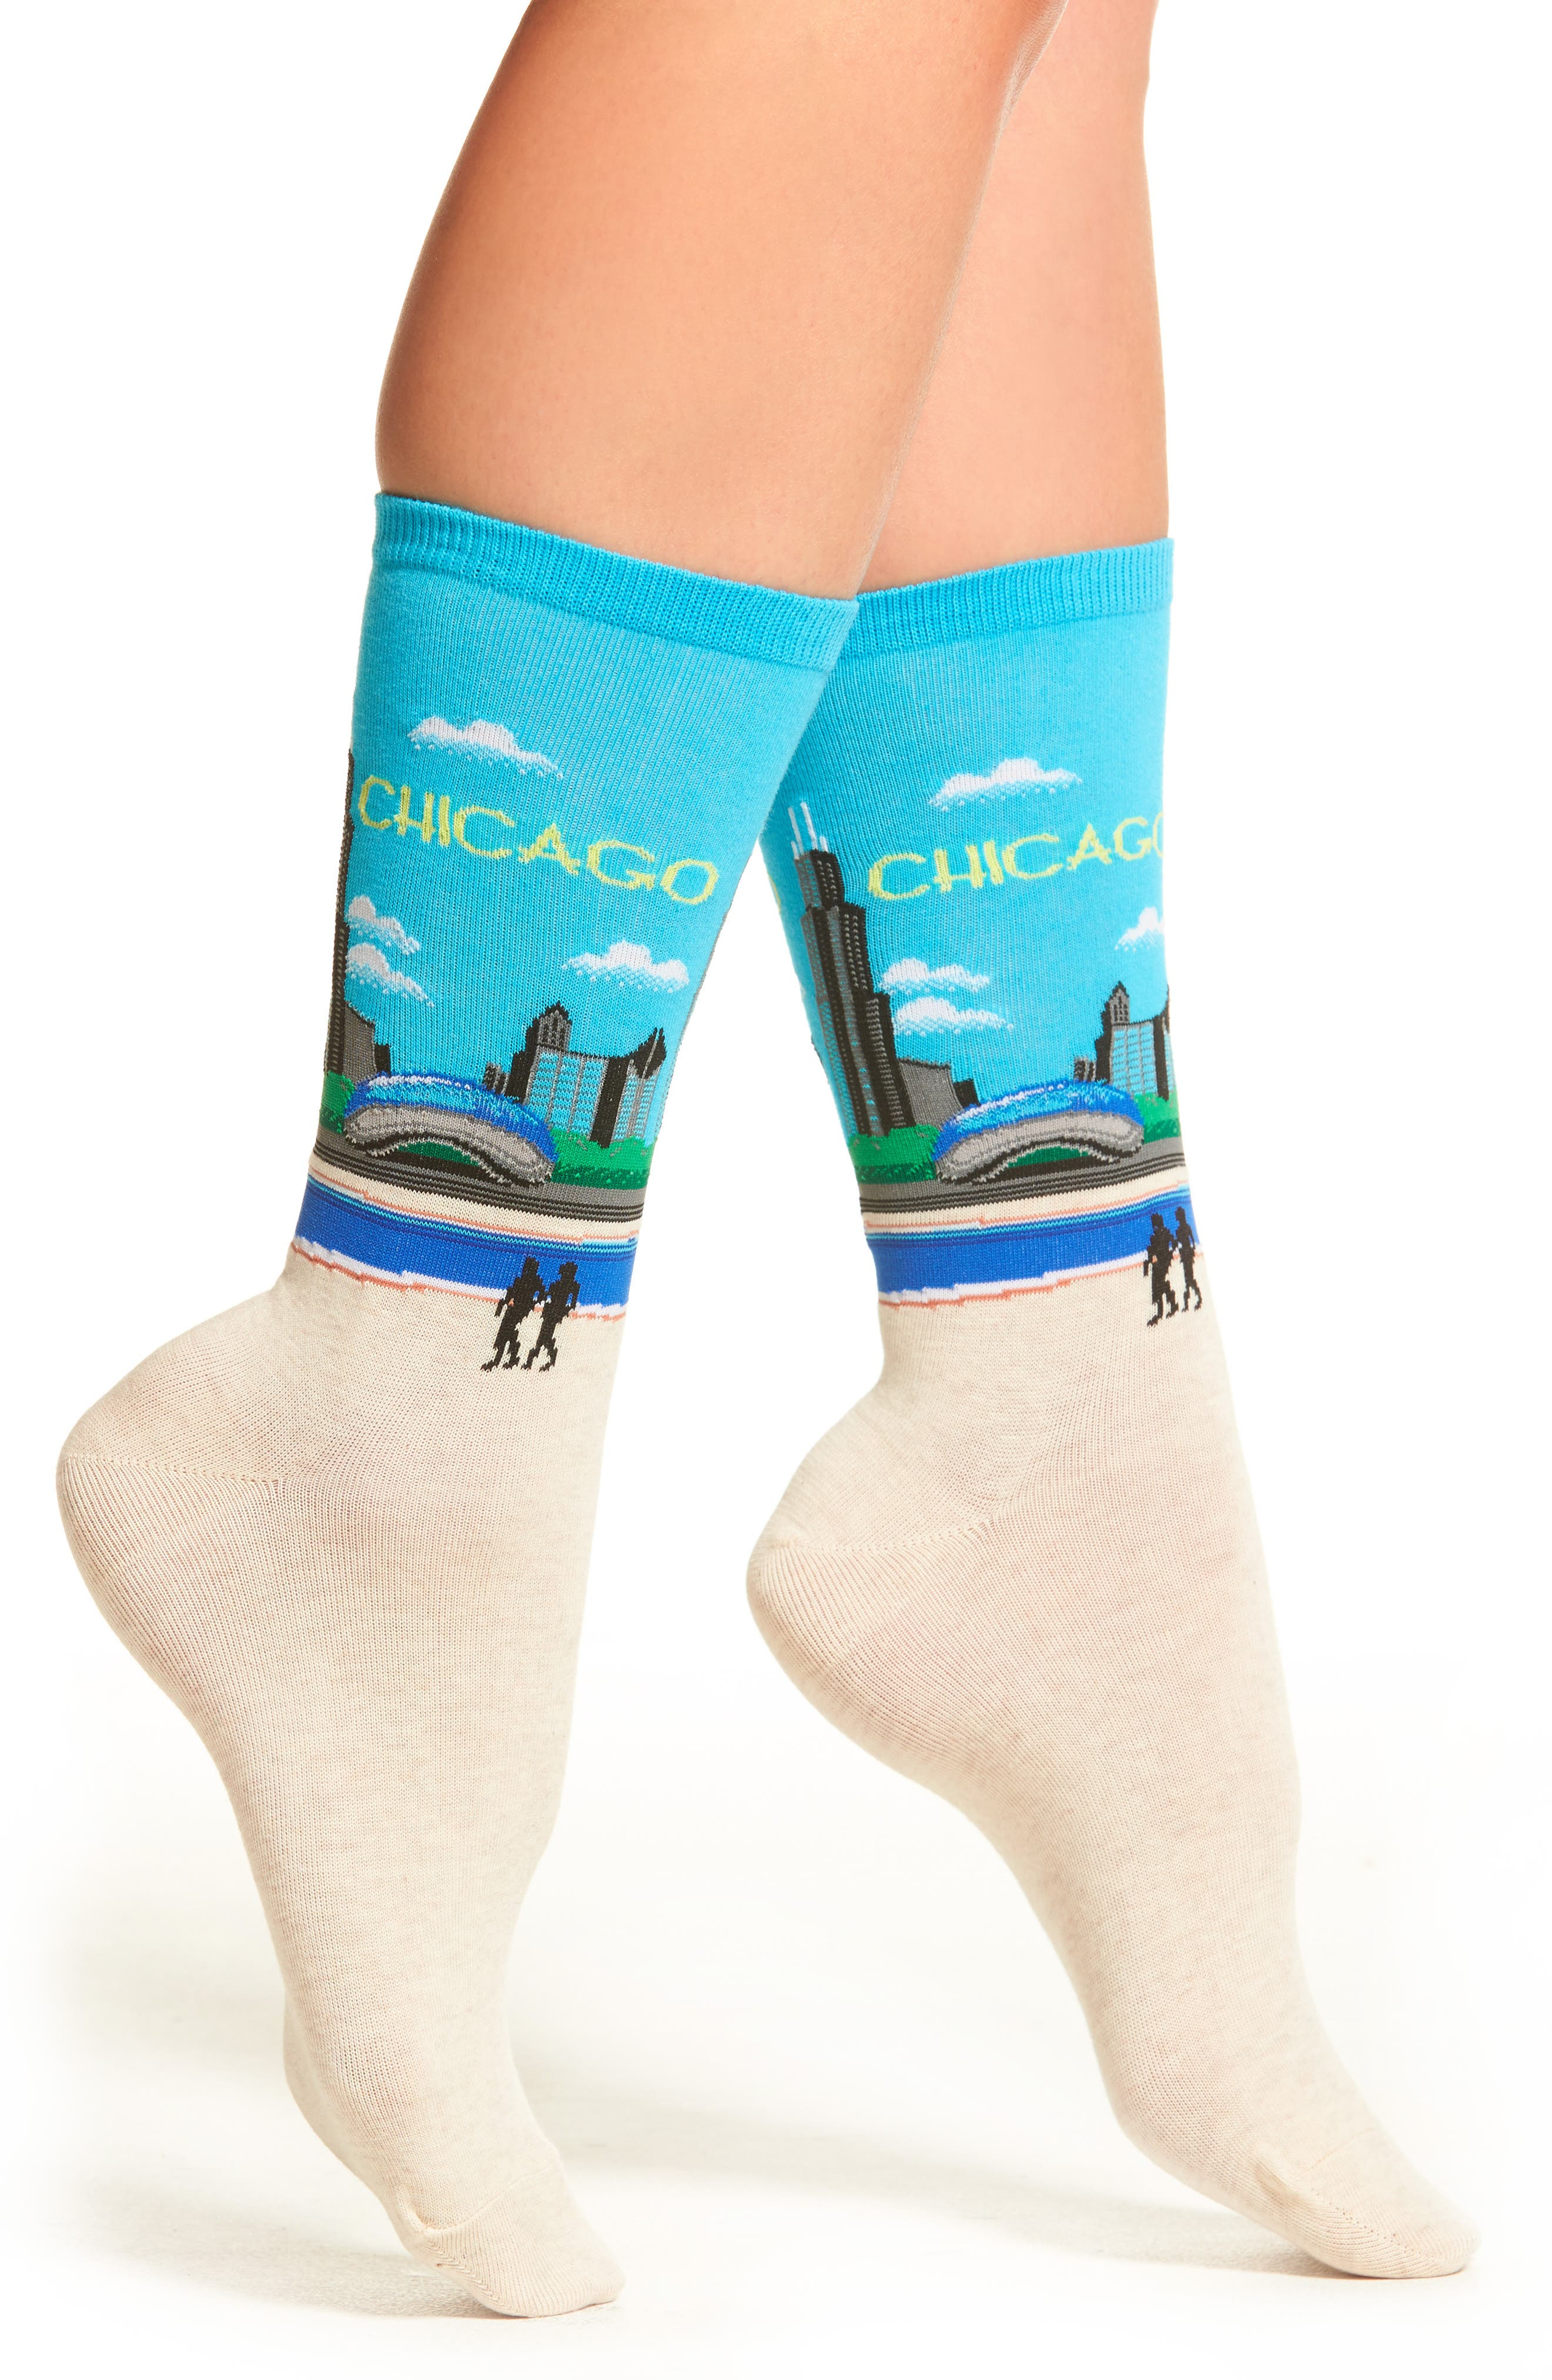 Alternate Image 1 Selected - Hot Sox Chicago Crew Socks (3 for $15)